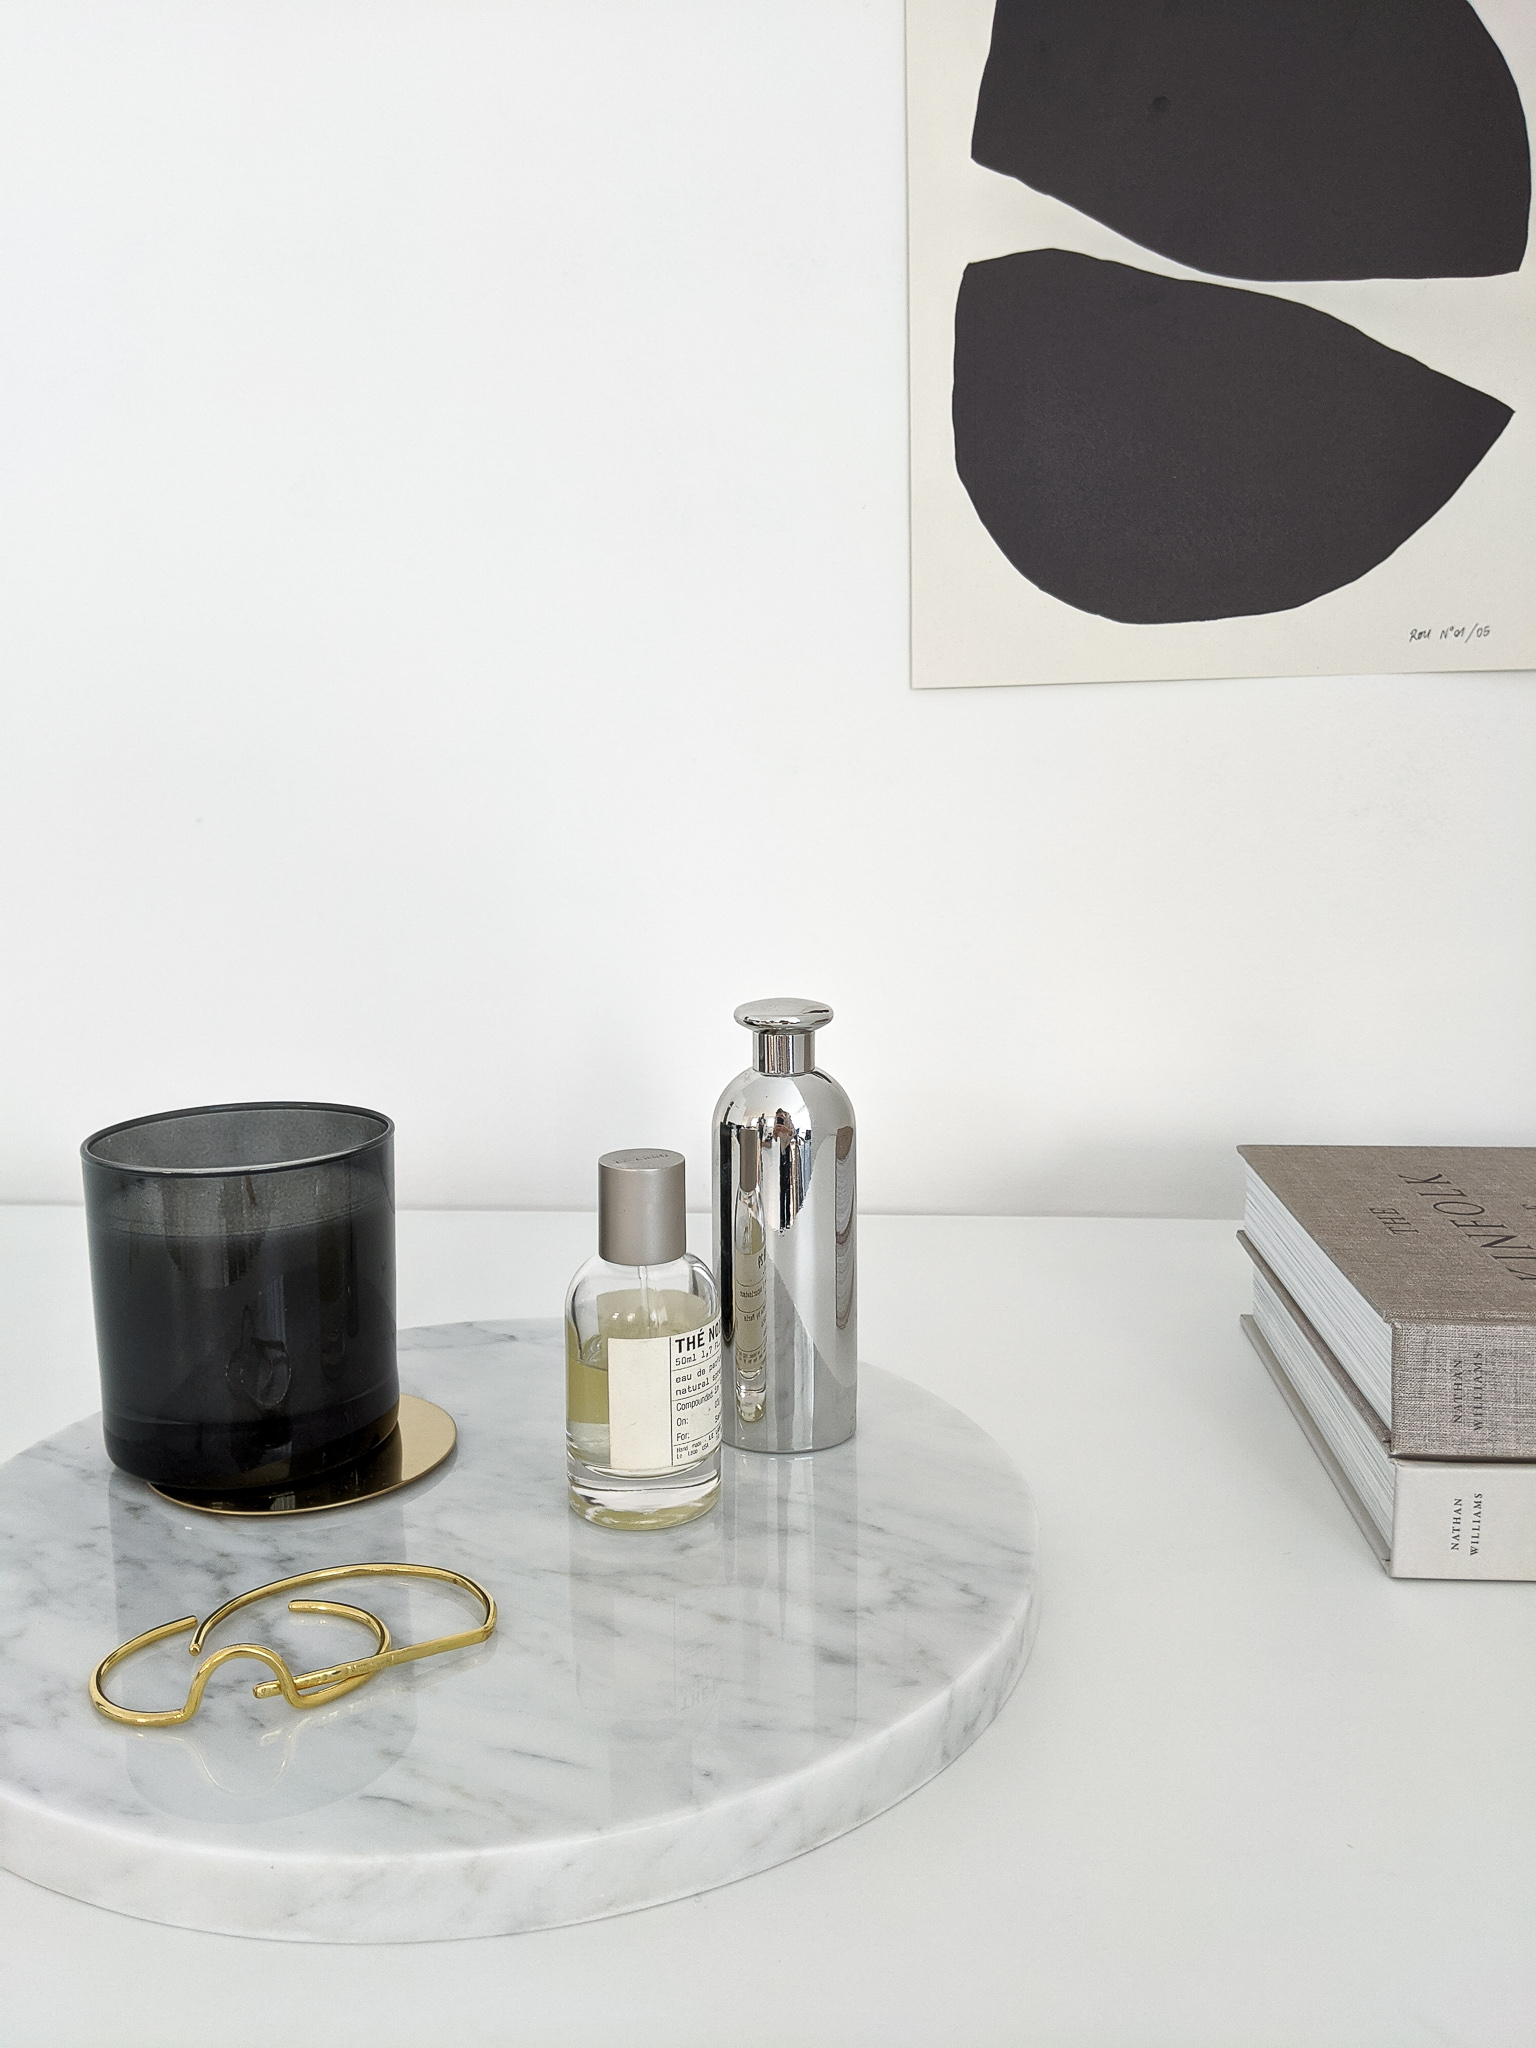 Artful Accessorizing: The Minimalist Home Objects